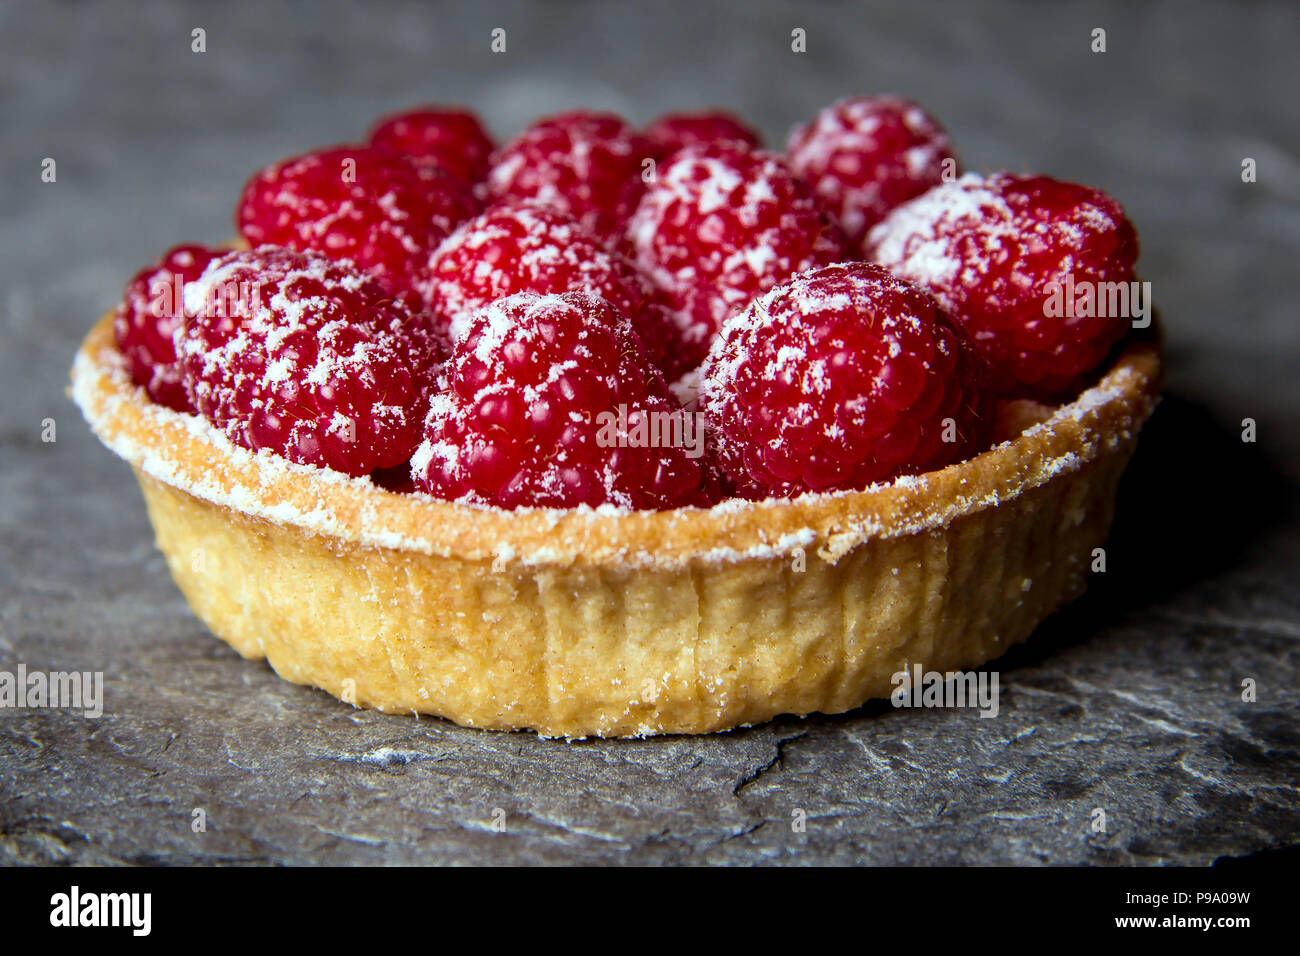 Raspberry tart made with shortcrust pastry dusted with icing sugar presented on a Cornish slate surface. - Stock Image